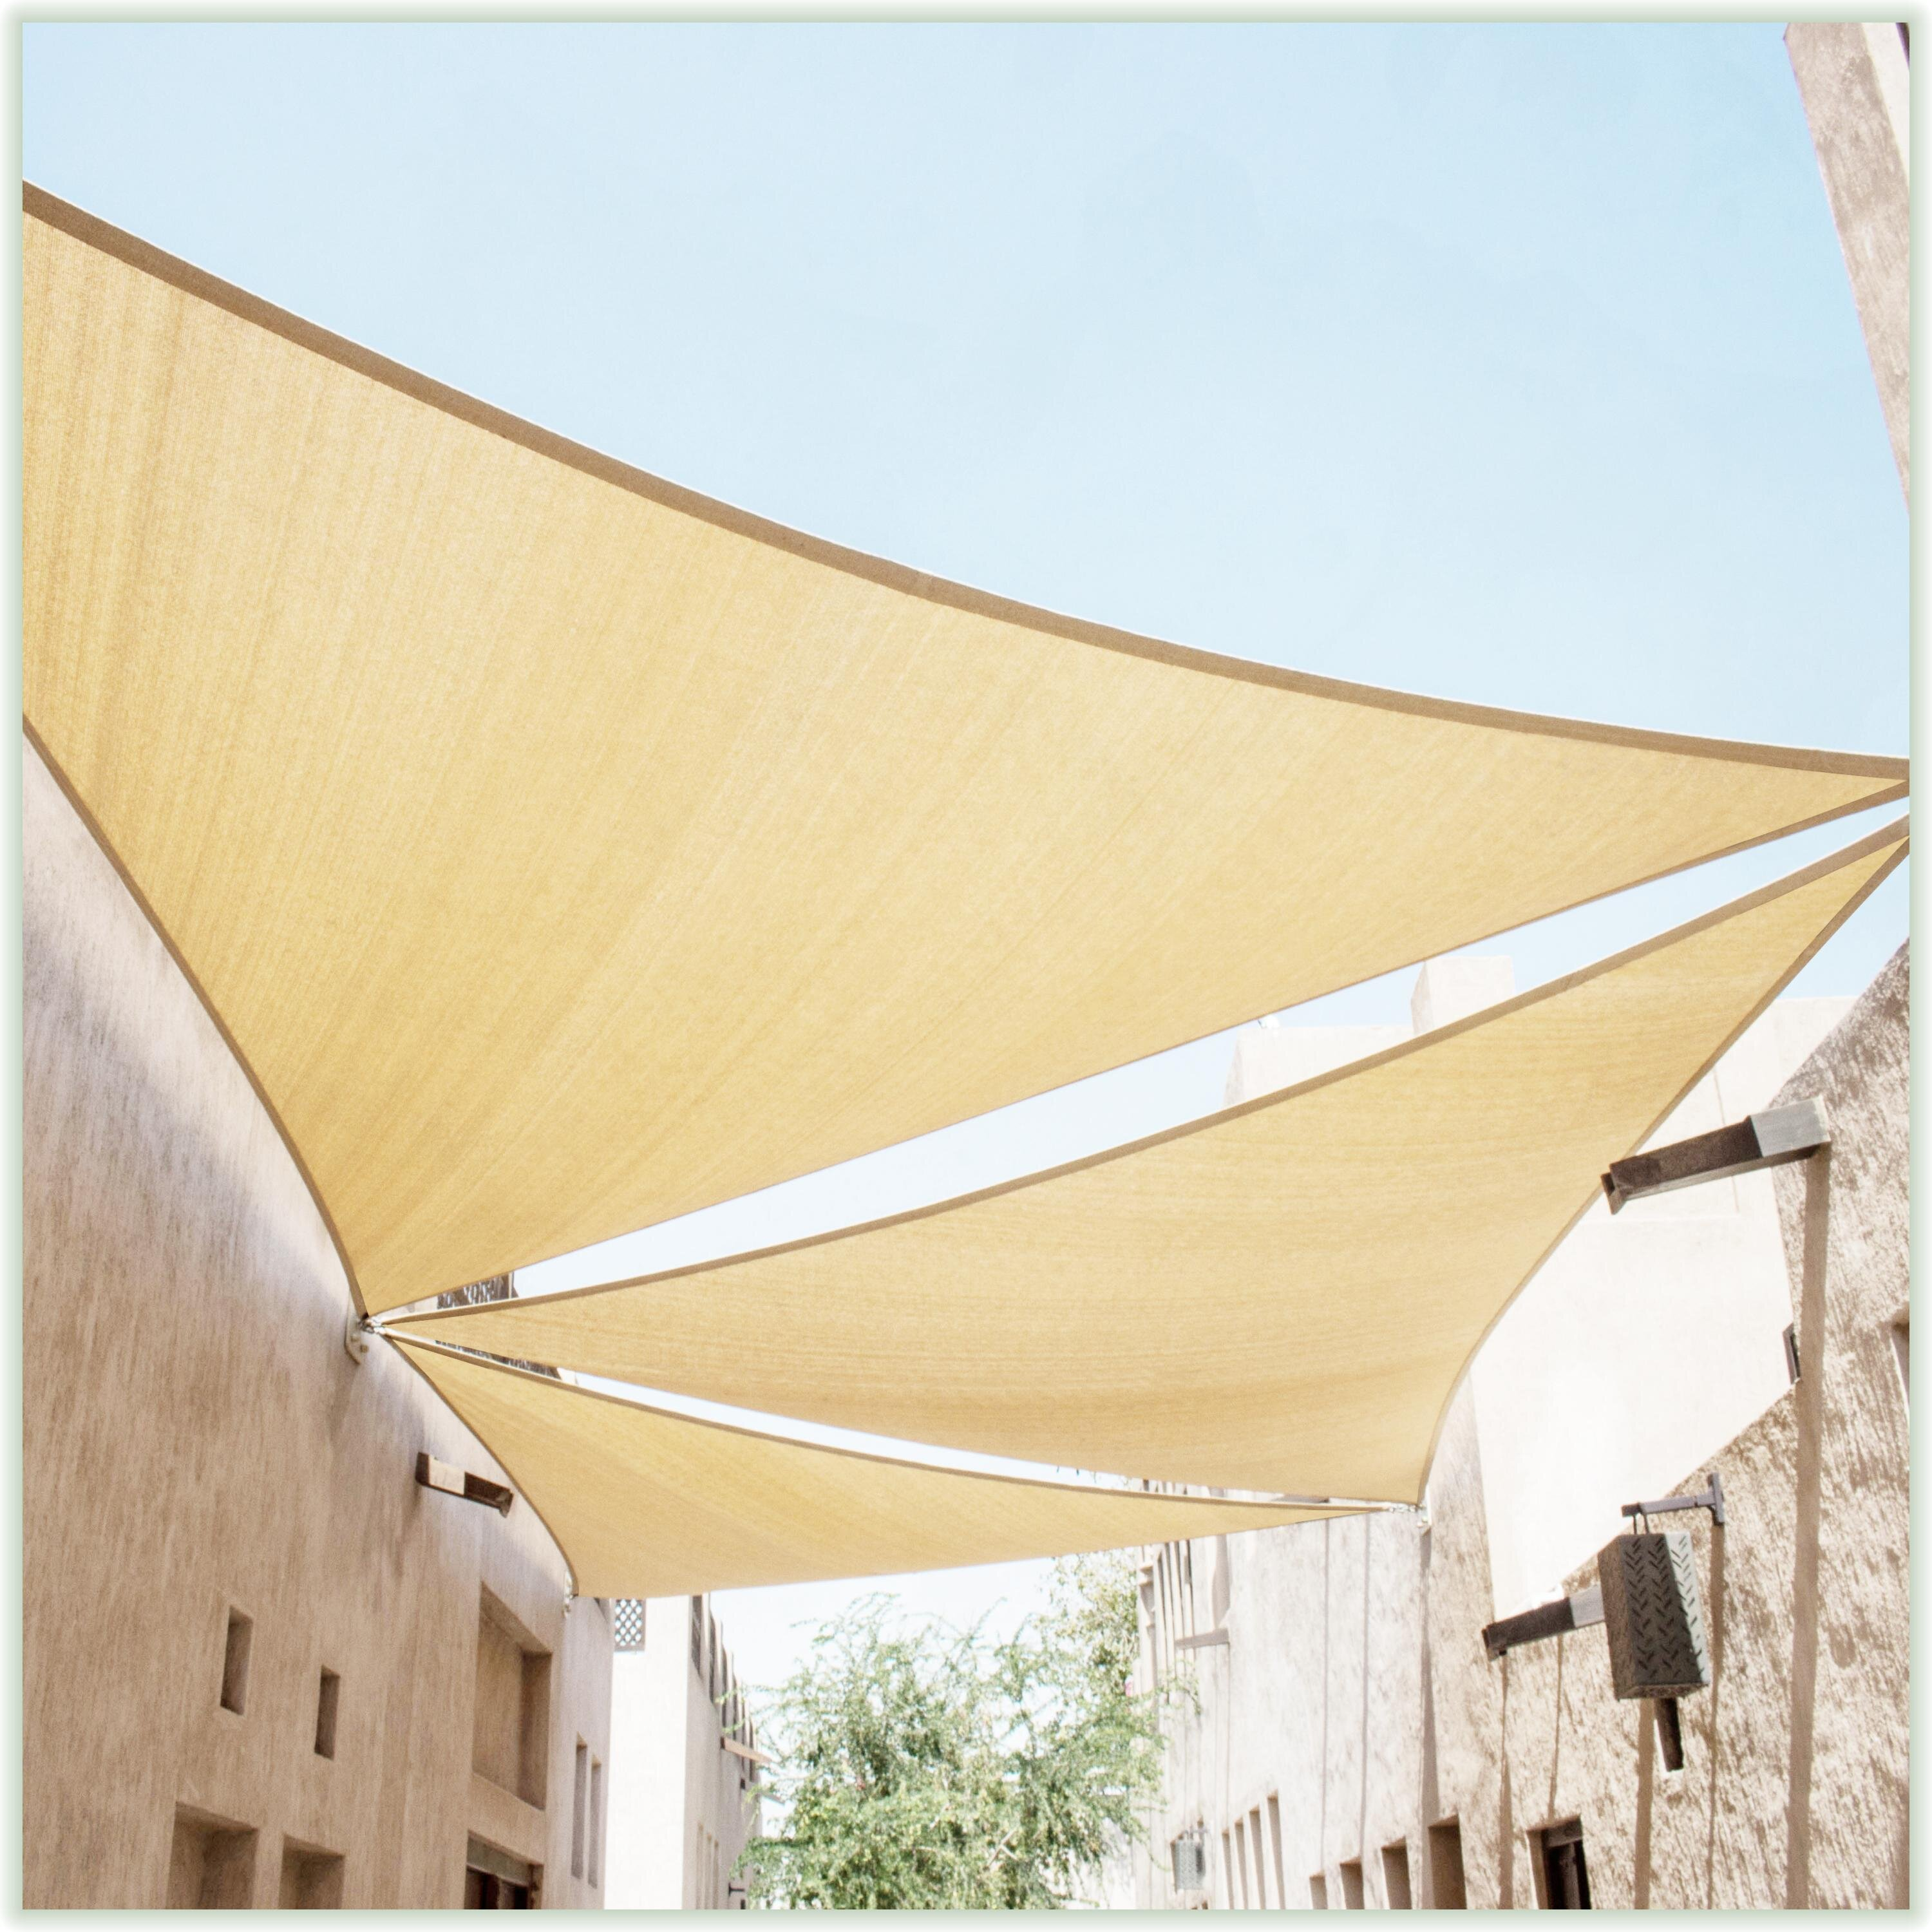 6 x 8 Grey Rectangle Sun Shade Sail 95/% UV Blockage Water /& Air Permeable for Outdoor Patio Garden Commercial /& Residential